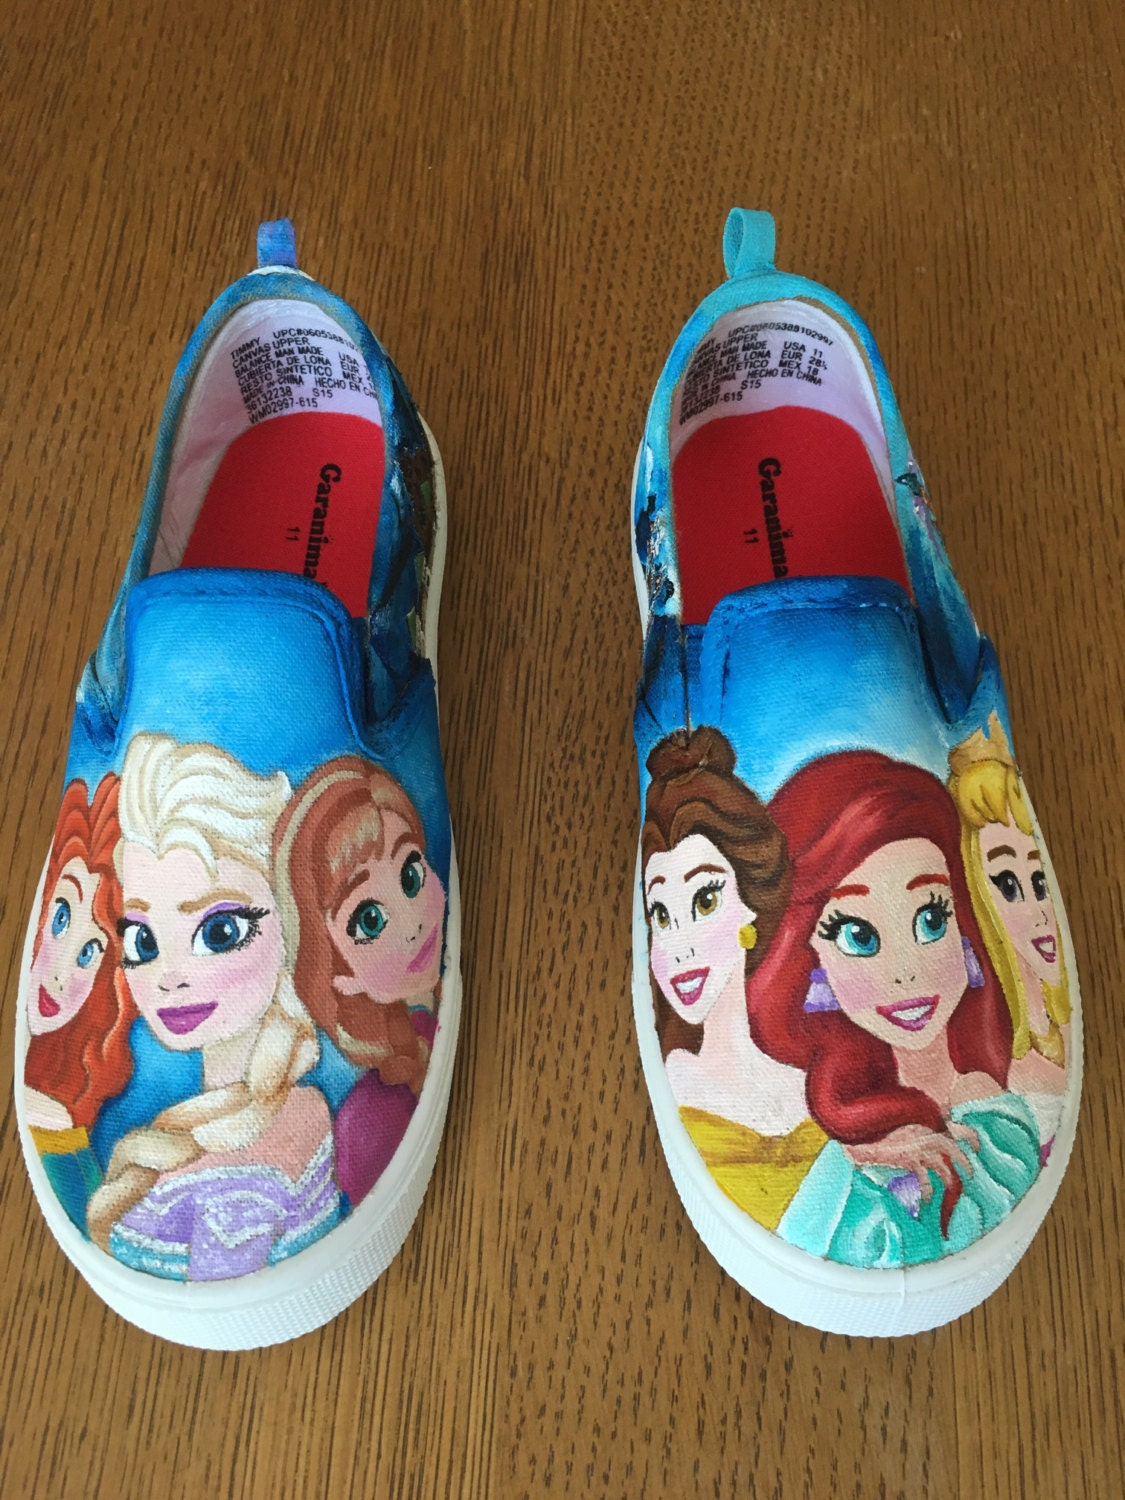 Your Dream Princess Shoes Have One Name: Liudmila